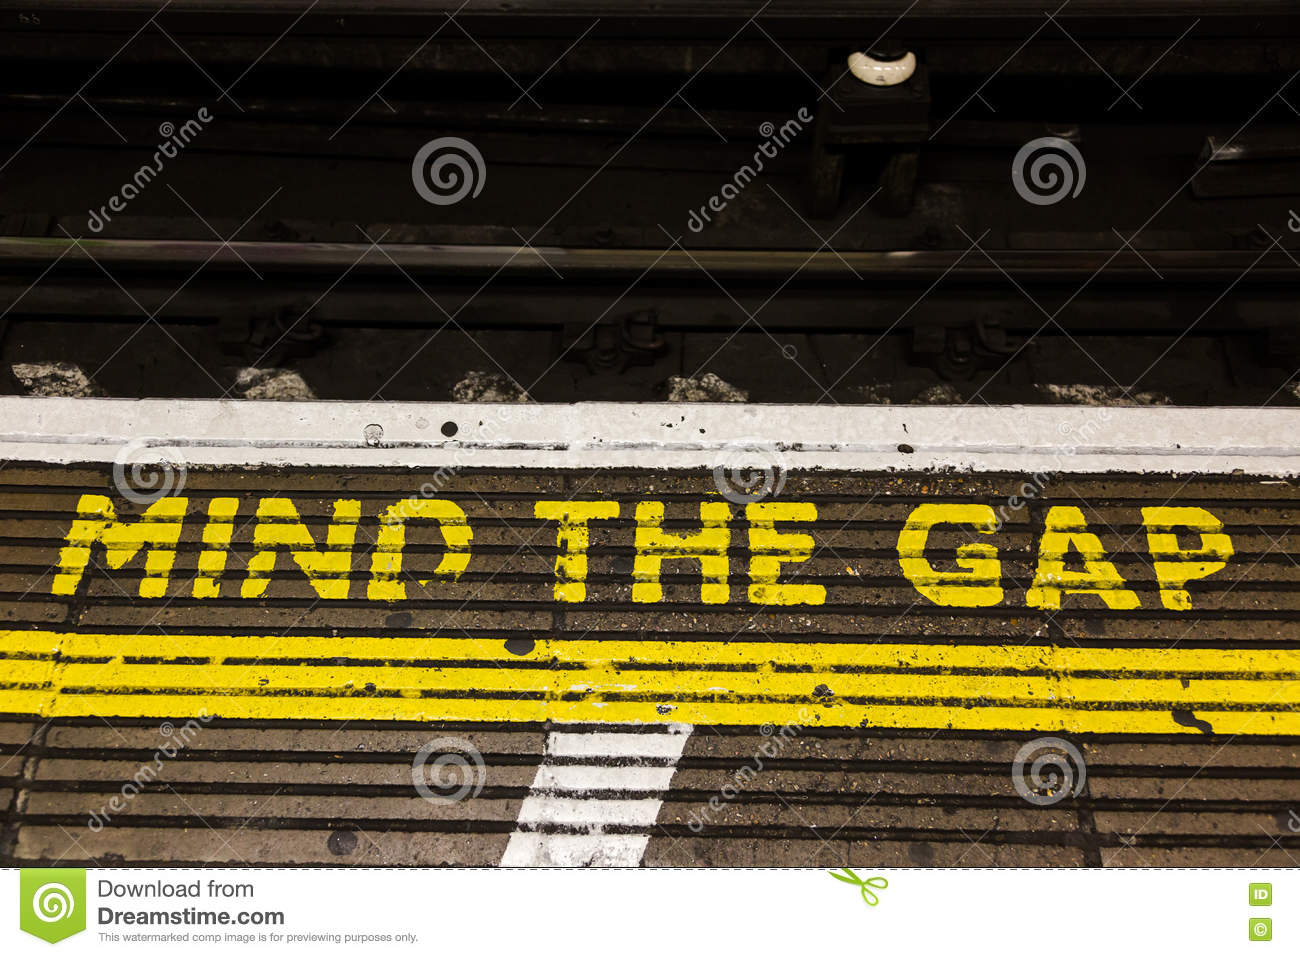 Mind The Gap Stock Image Image Of Caution Railway Letters 79232245